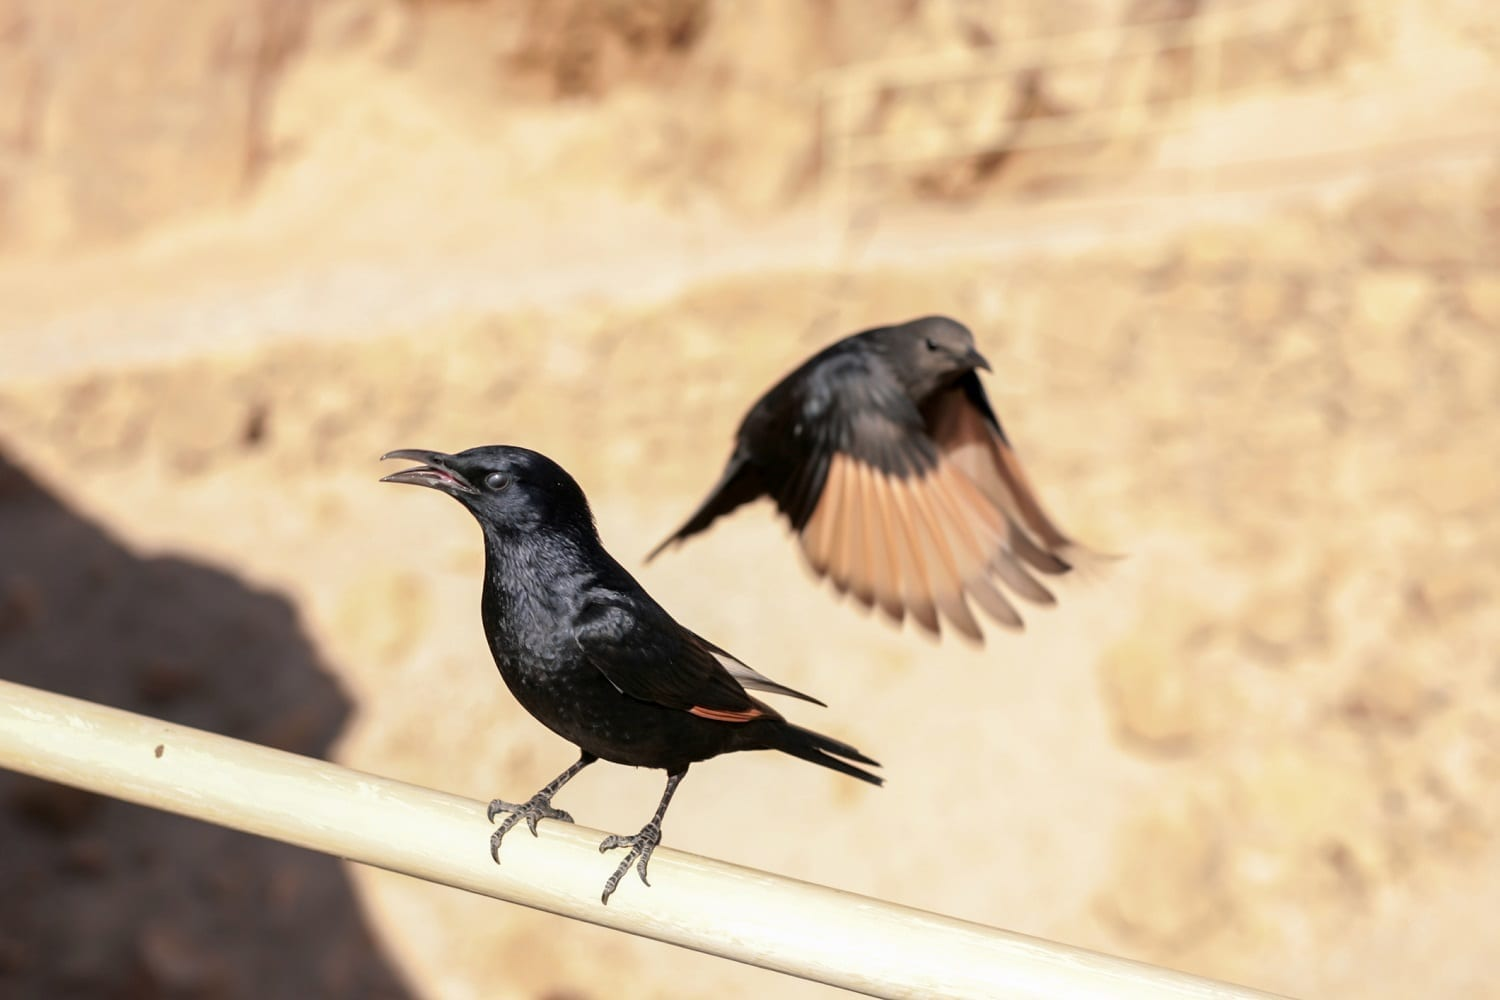 Tristram's Grackles at Masada ID 96006431 © | Dreamstime.com